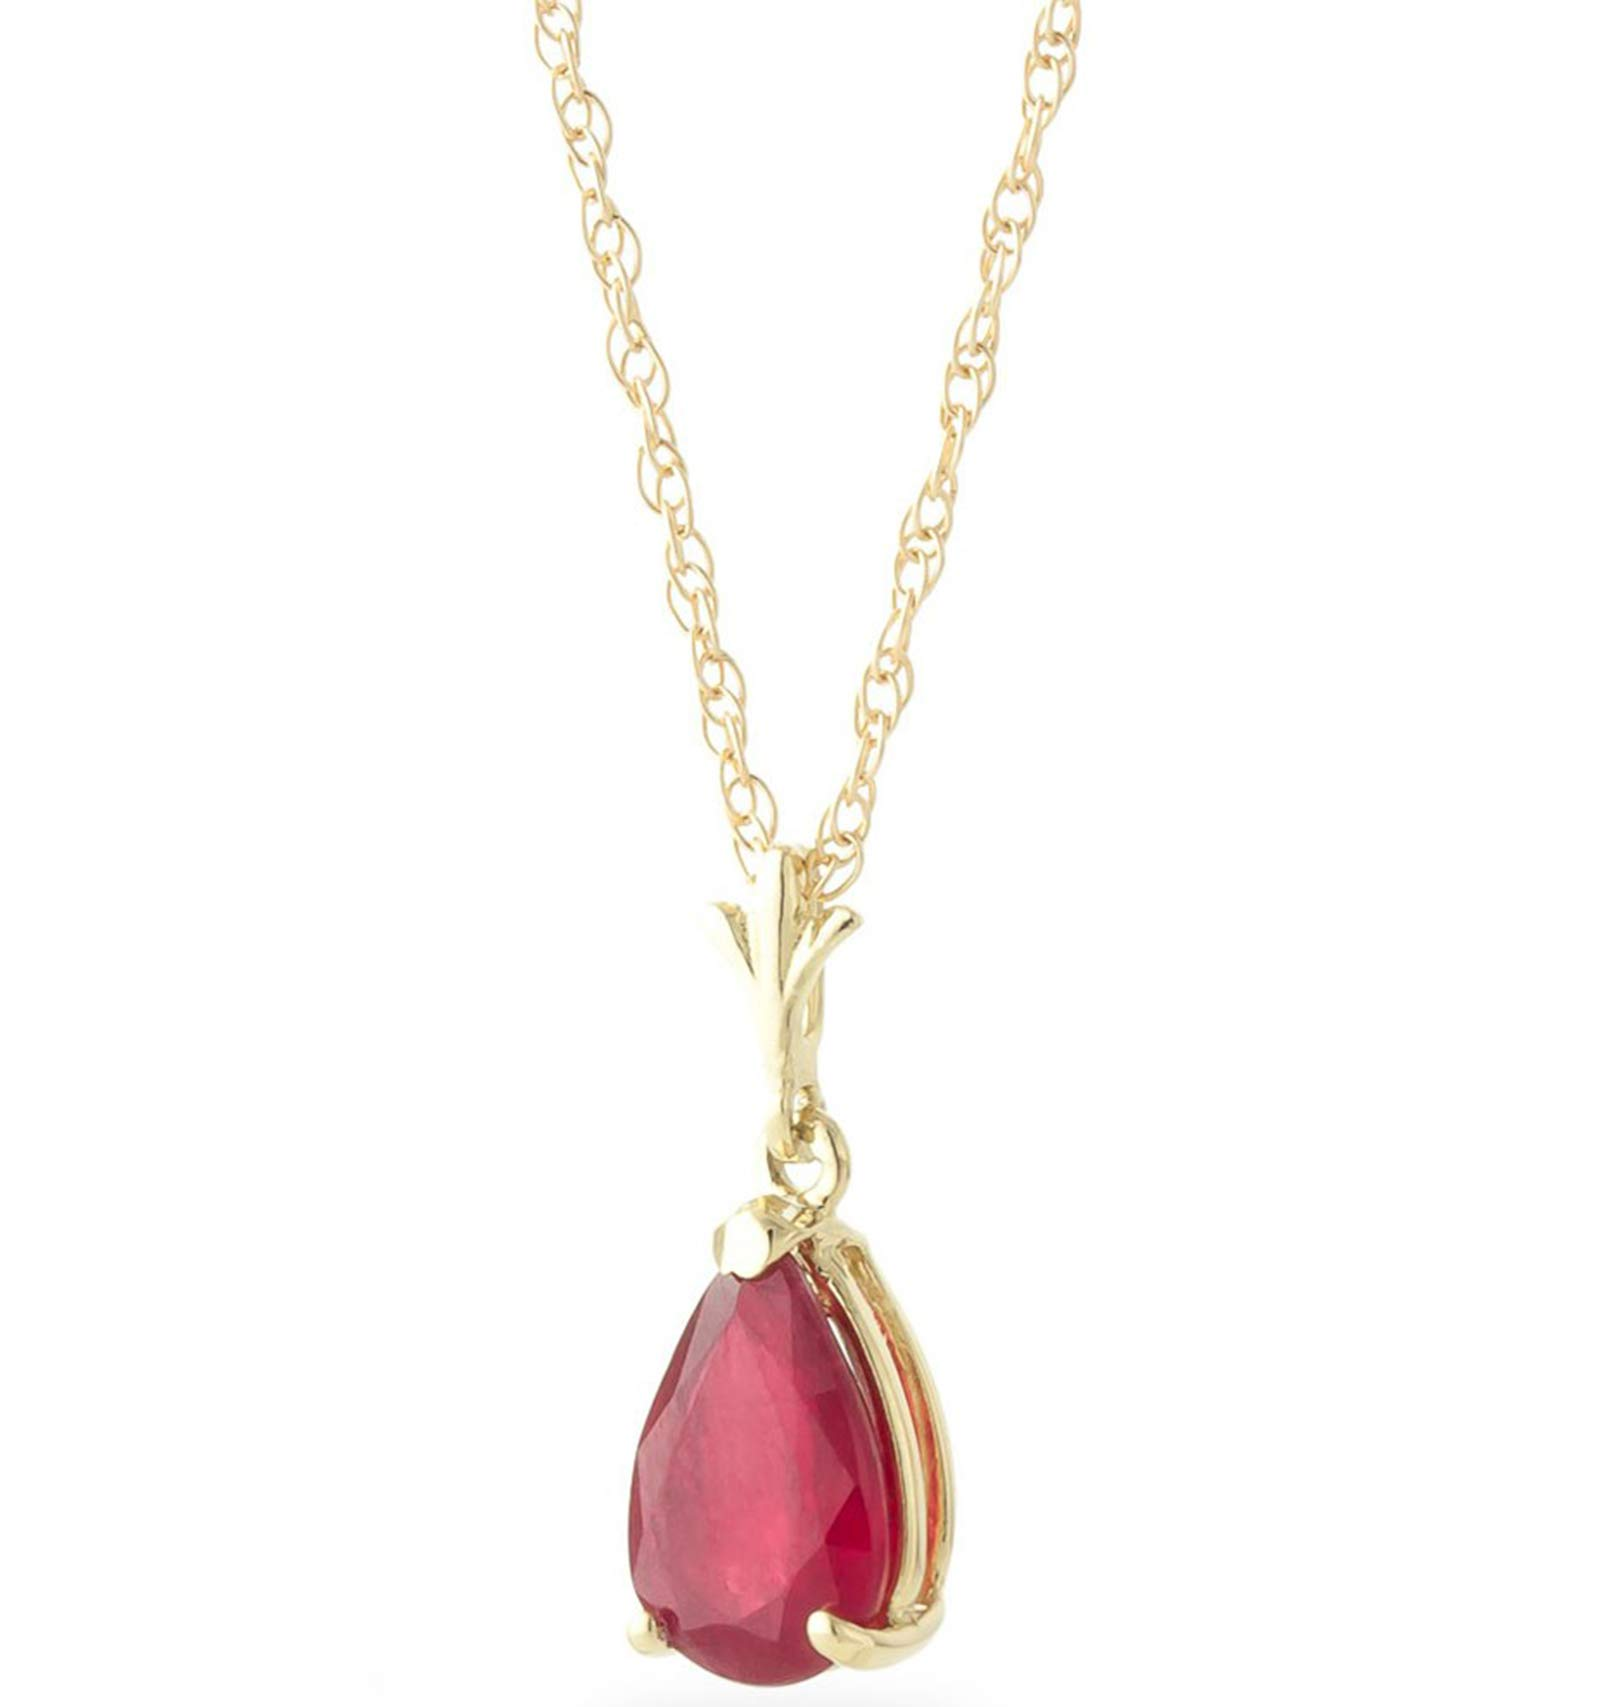 Galaxy Gold 1.75 Carat 14k 18'' Solid Gold Natural Pear-shaped Ruby Drop Pendant Necklace by Galaxy Gold (Image #1)